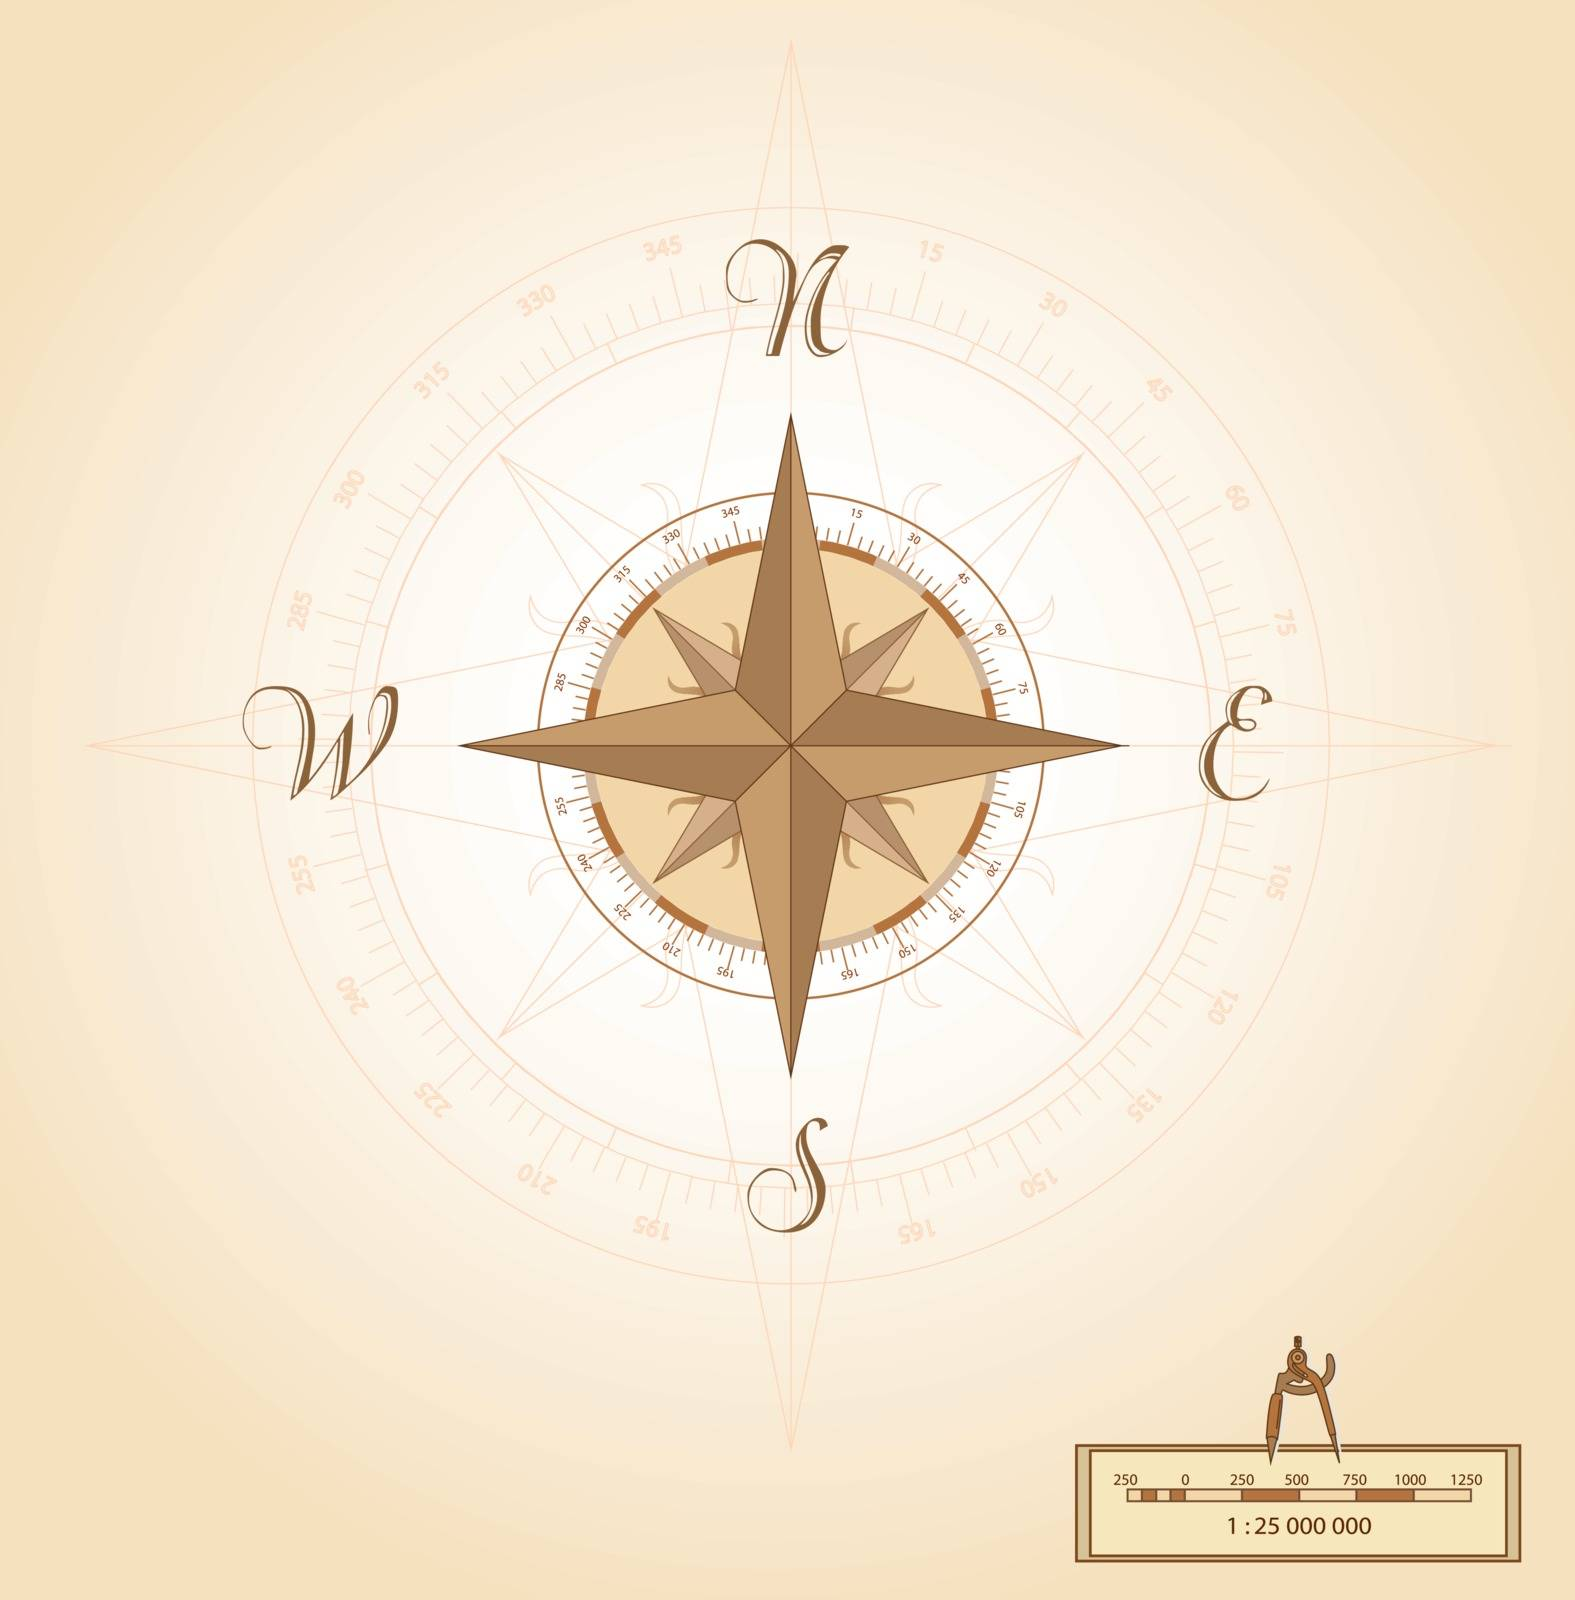 Compass direction. Navigation wind rose illustration. Old vintage map. Wind rose a tool to guide travelers and read maps. North, South, East, West. vector brown illustartion compass navigation old map